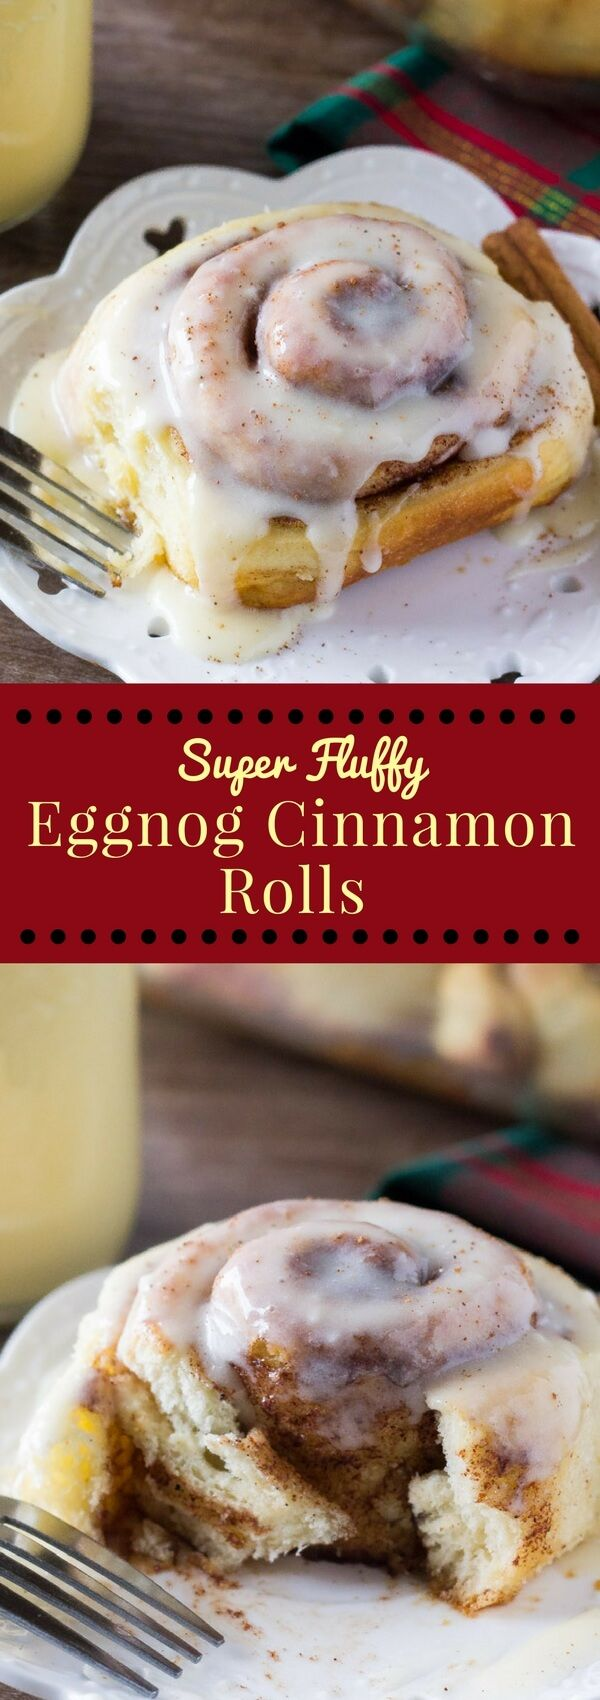 Cinnamon Rolls are filled with spices and drizzled with eggnog glaze ...